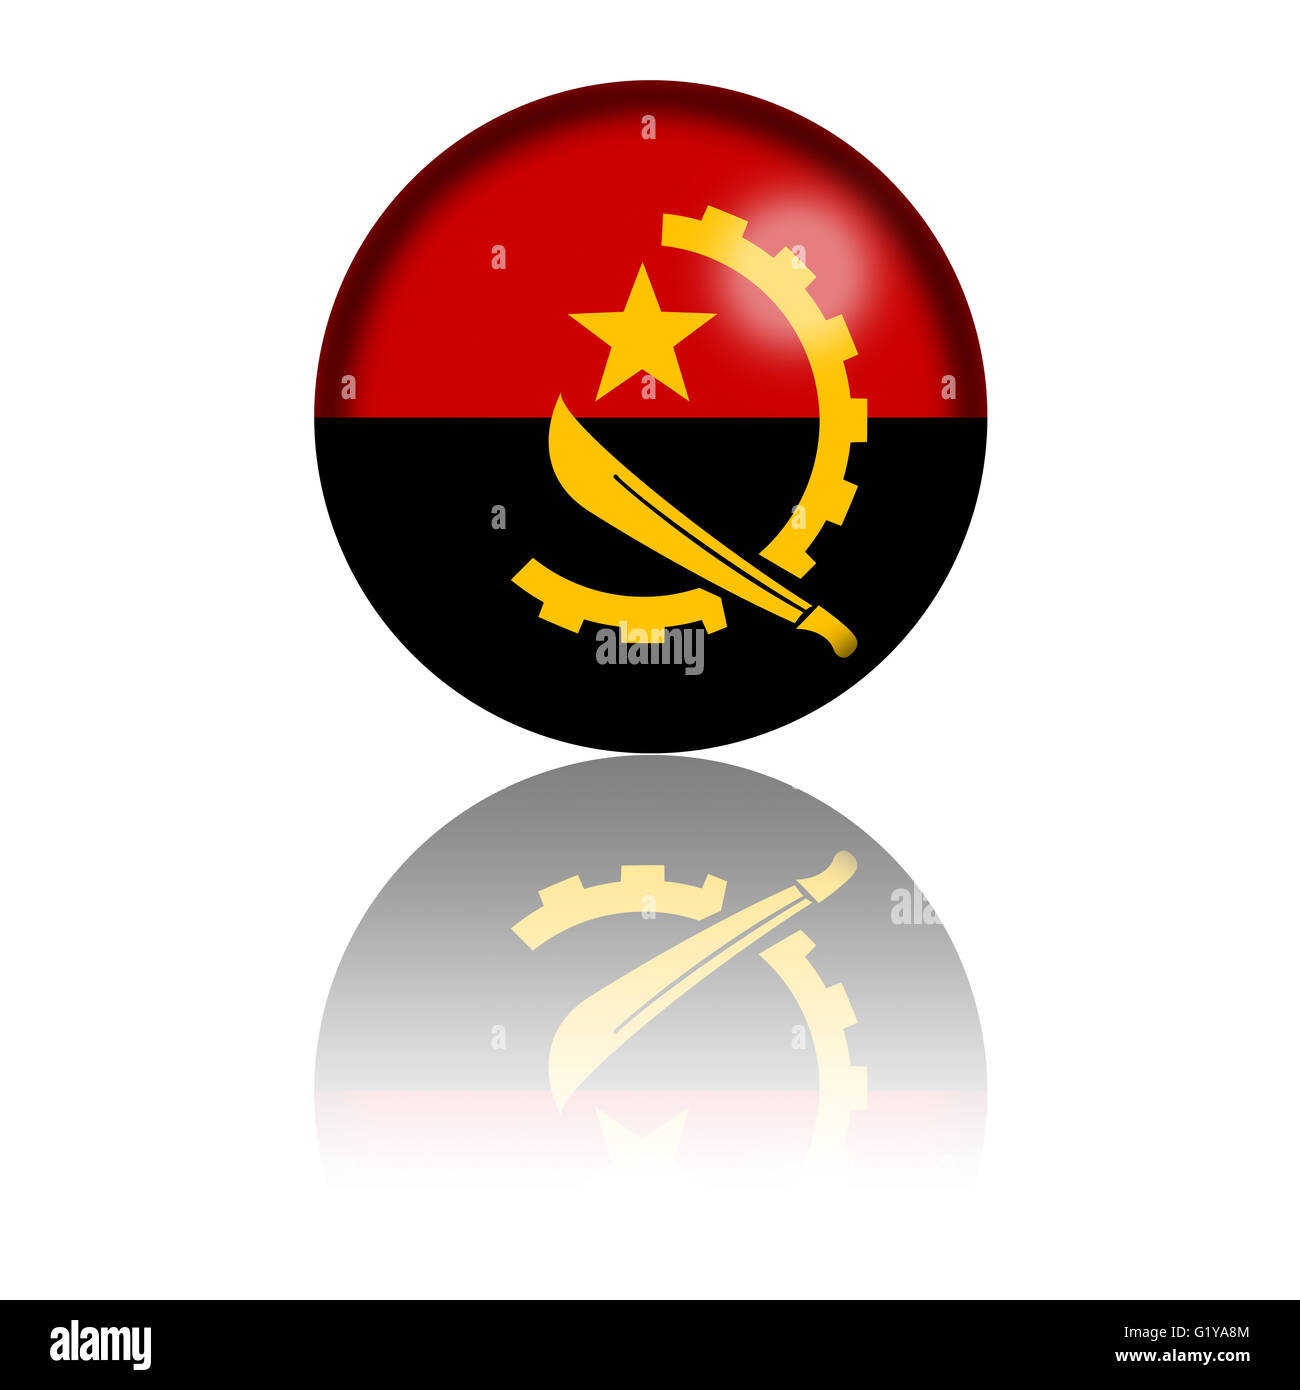 3D sphere or badge of Republic of Angola flag with reflection at bottom. - Stock Image